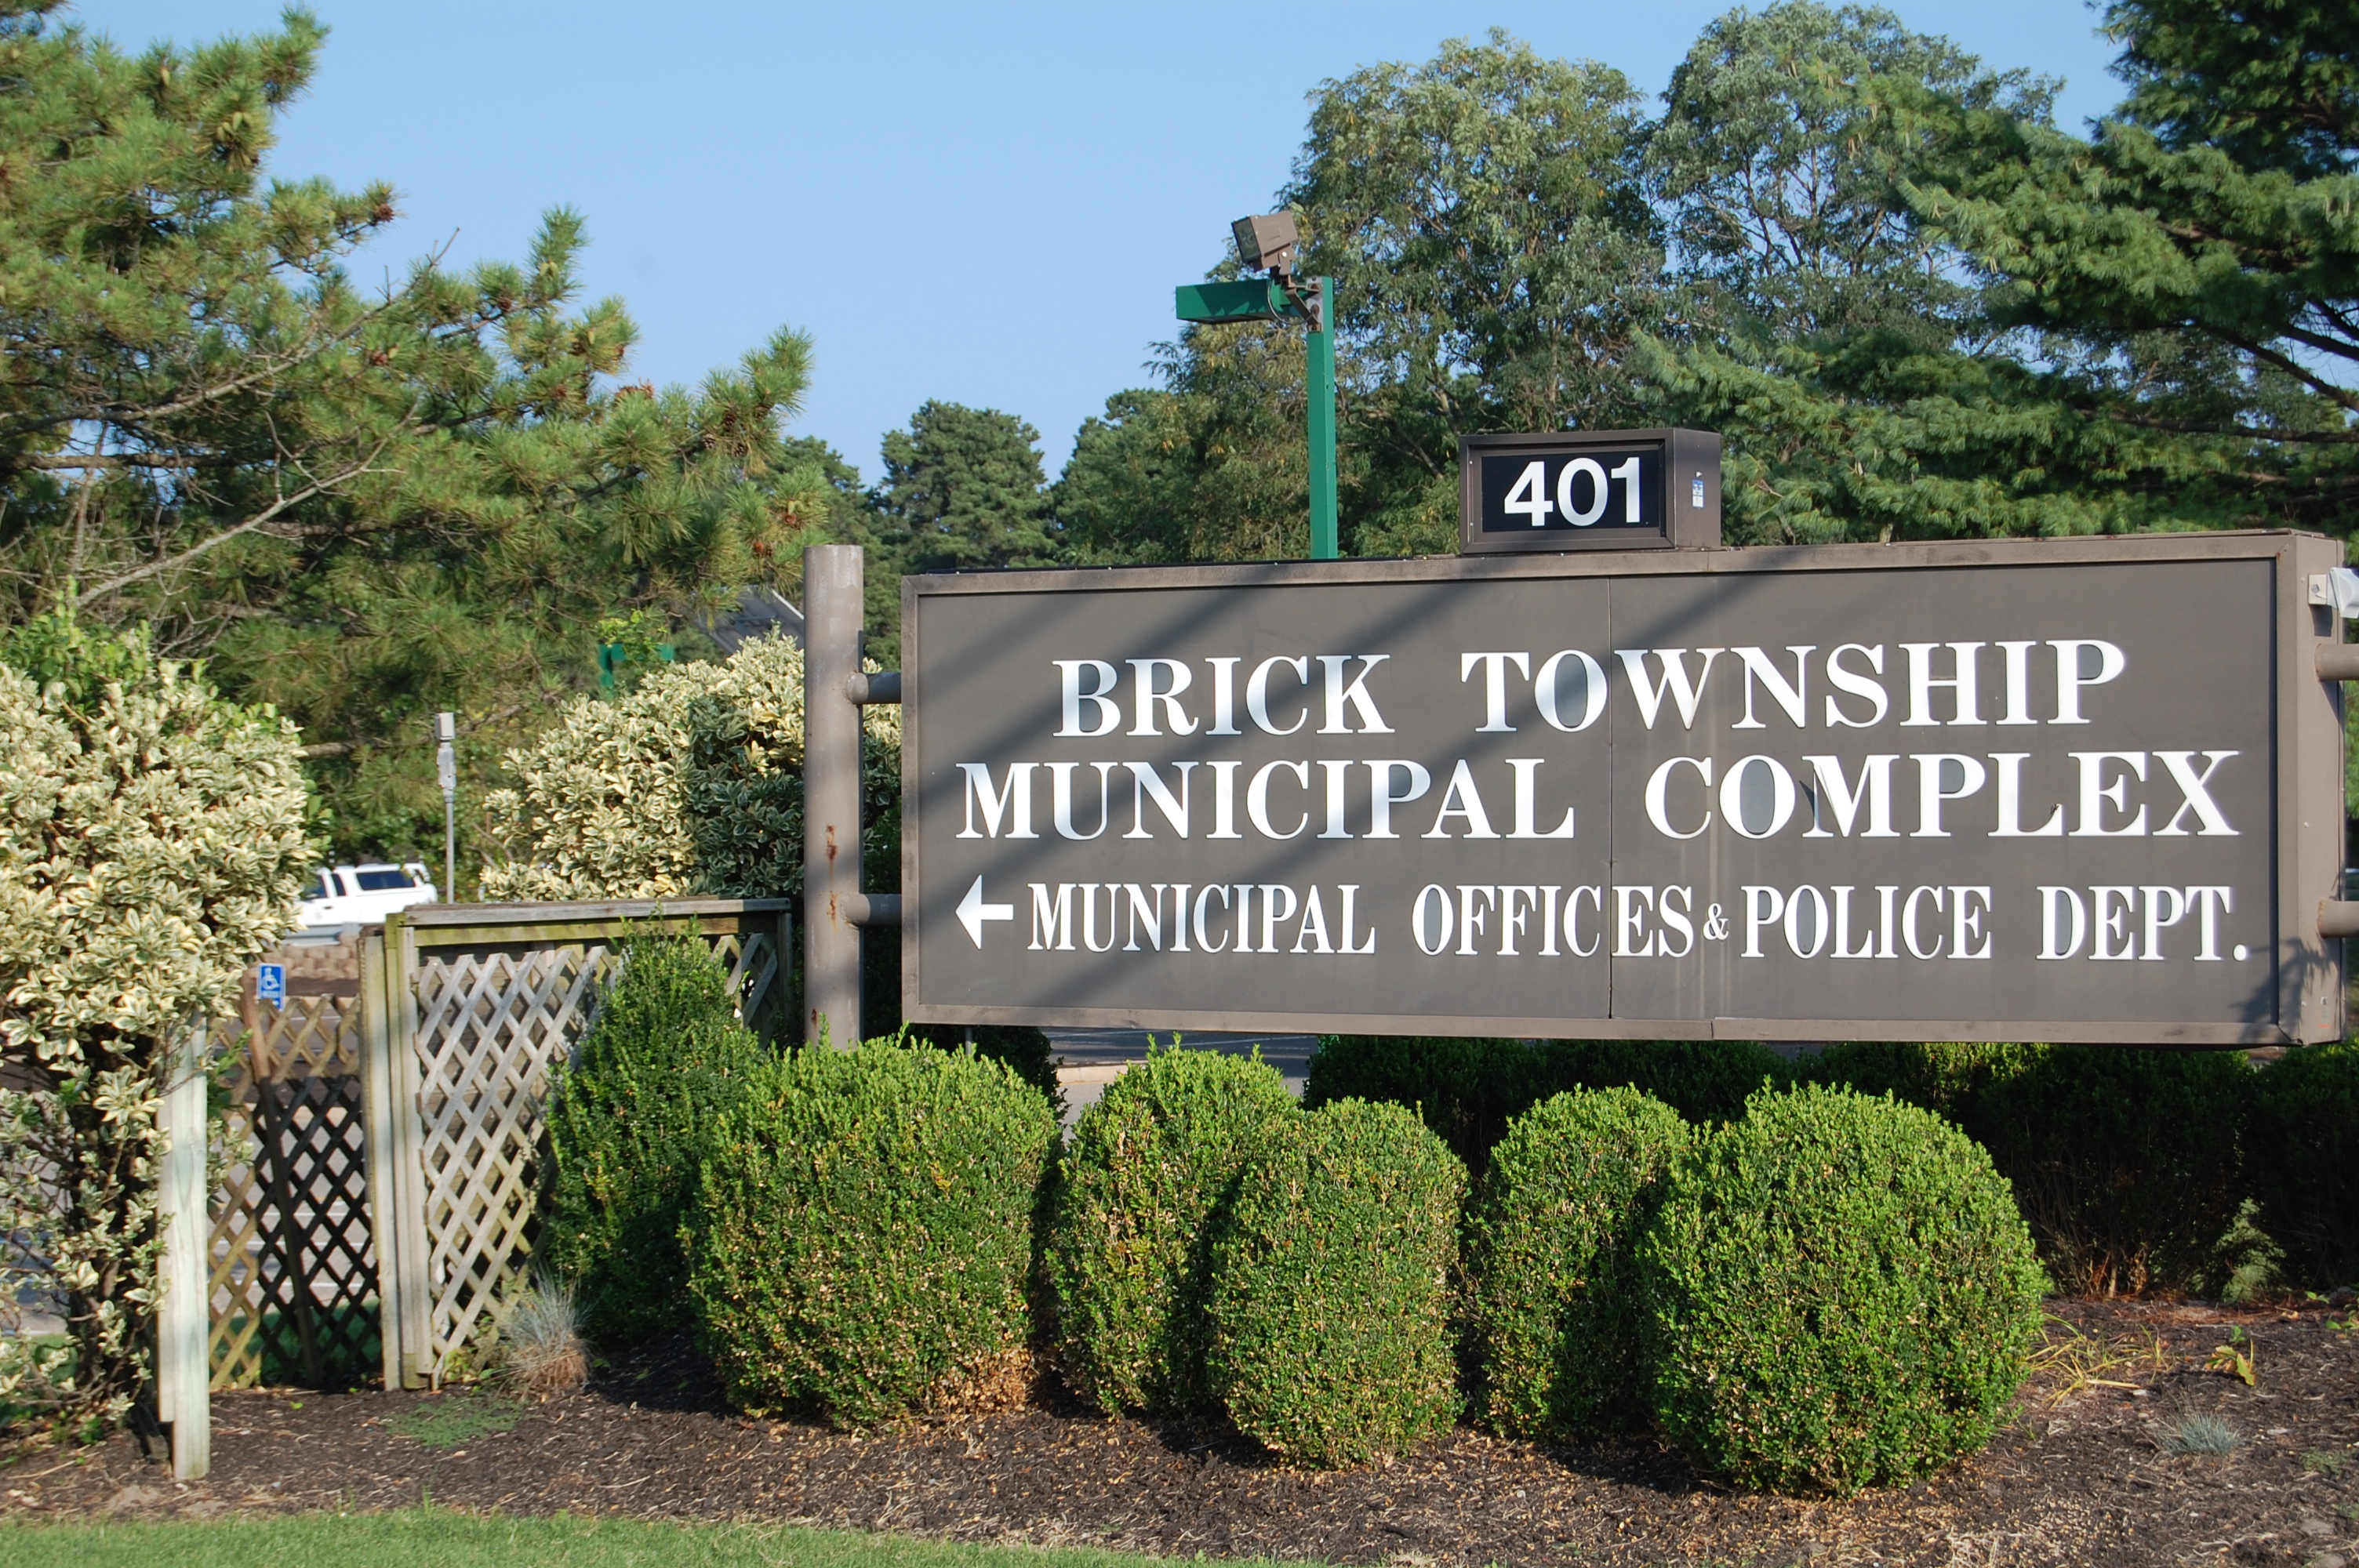 The Brick Township municipal complex. (Photo: Daniel Nee)